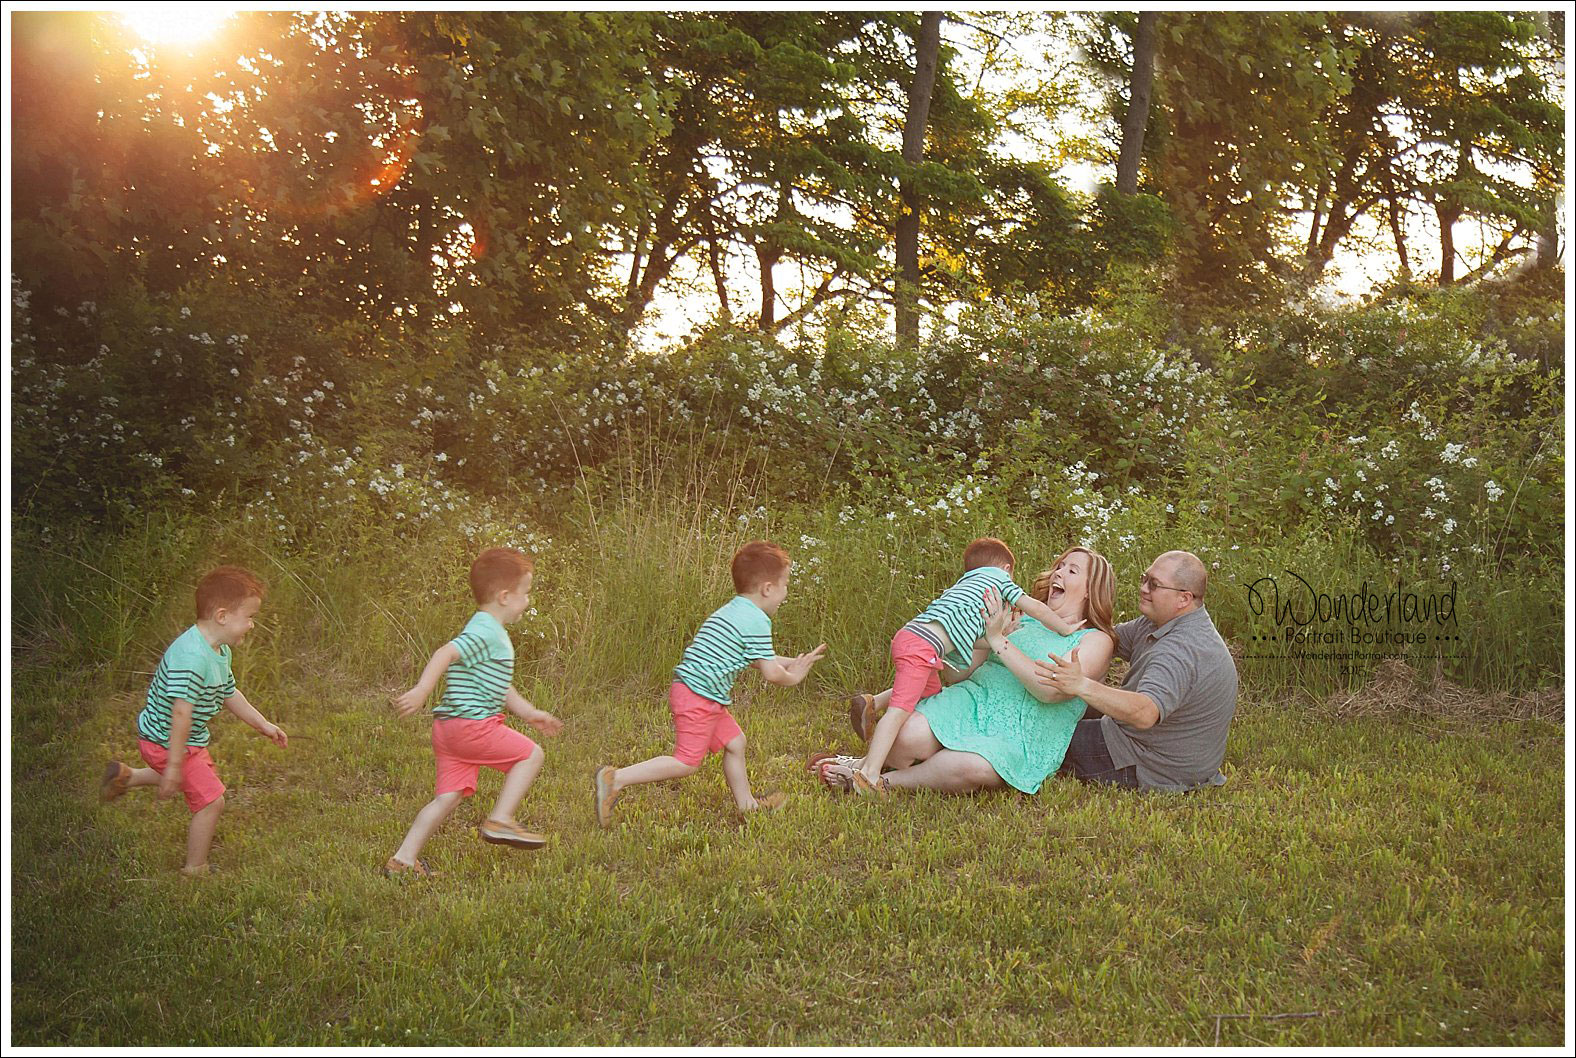 Bucks County PA Family Photo Pose Ideas Flow Posing Family in the woods | WonderlandPortrait.com